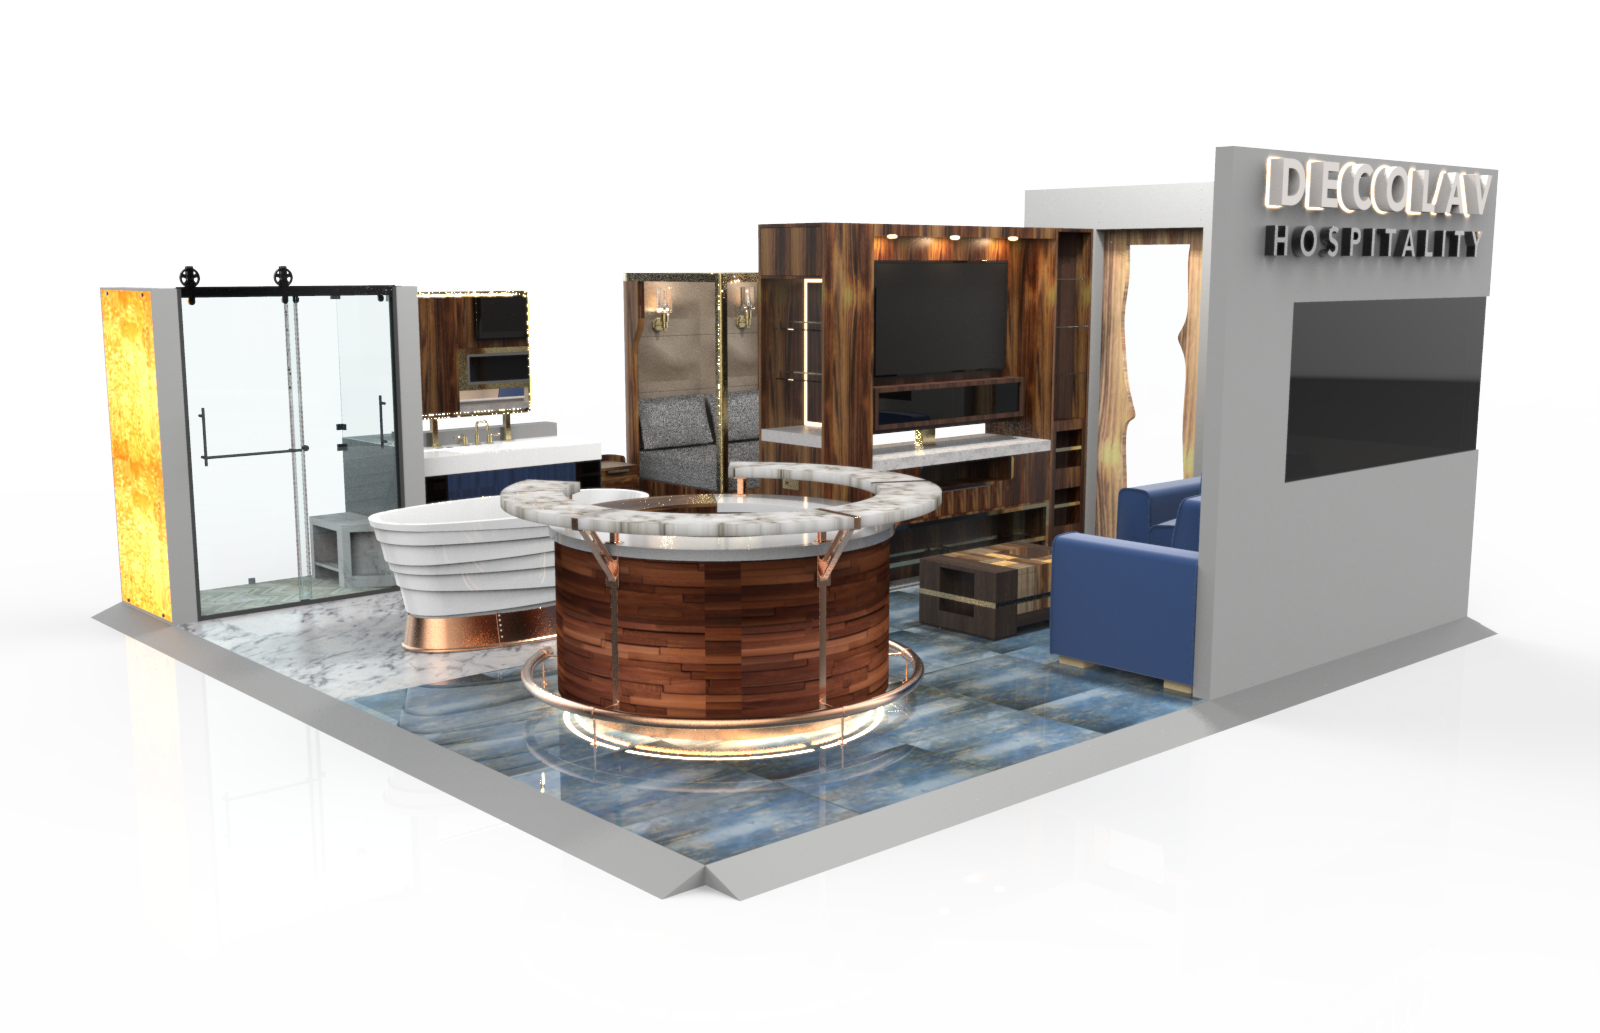 DECOLAV Hospitality to Exhibit at BDNY 2017 at the Javits Center, November 12-13th